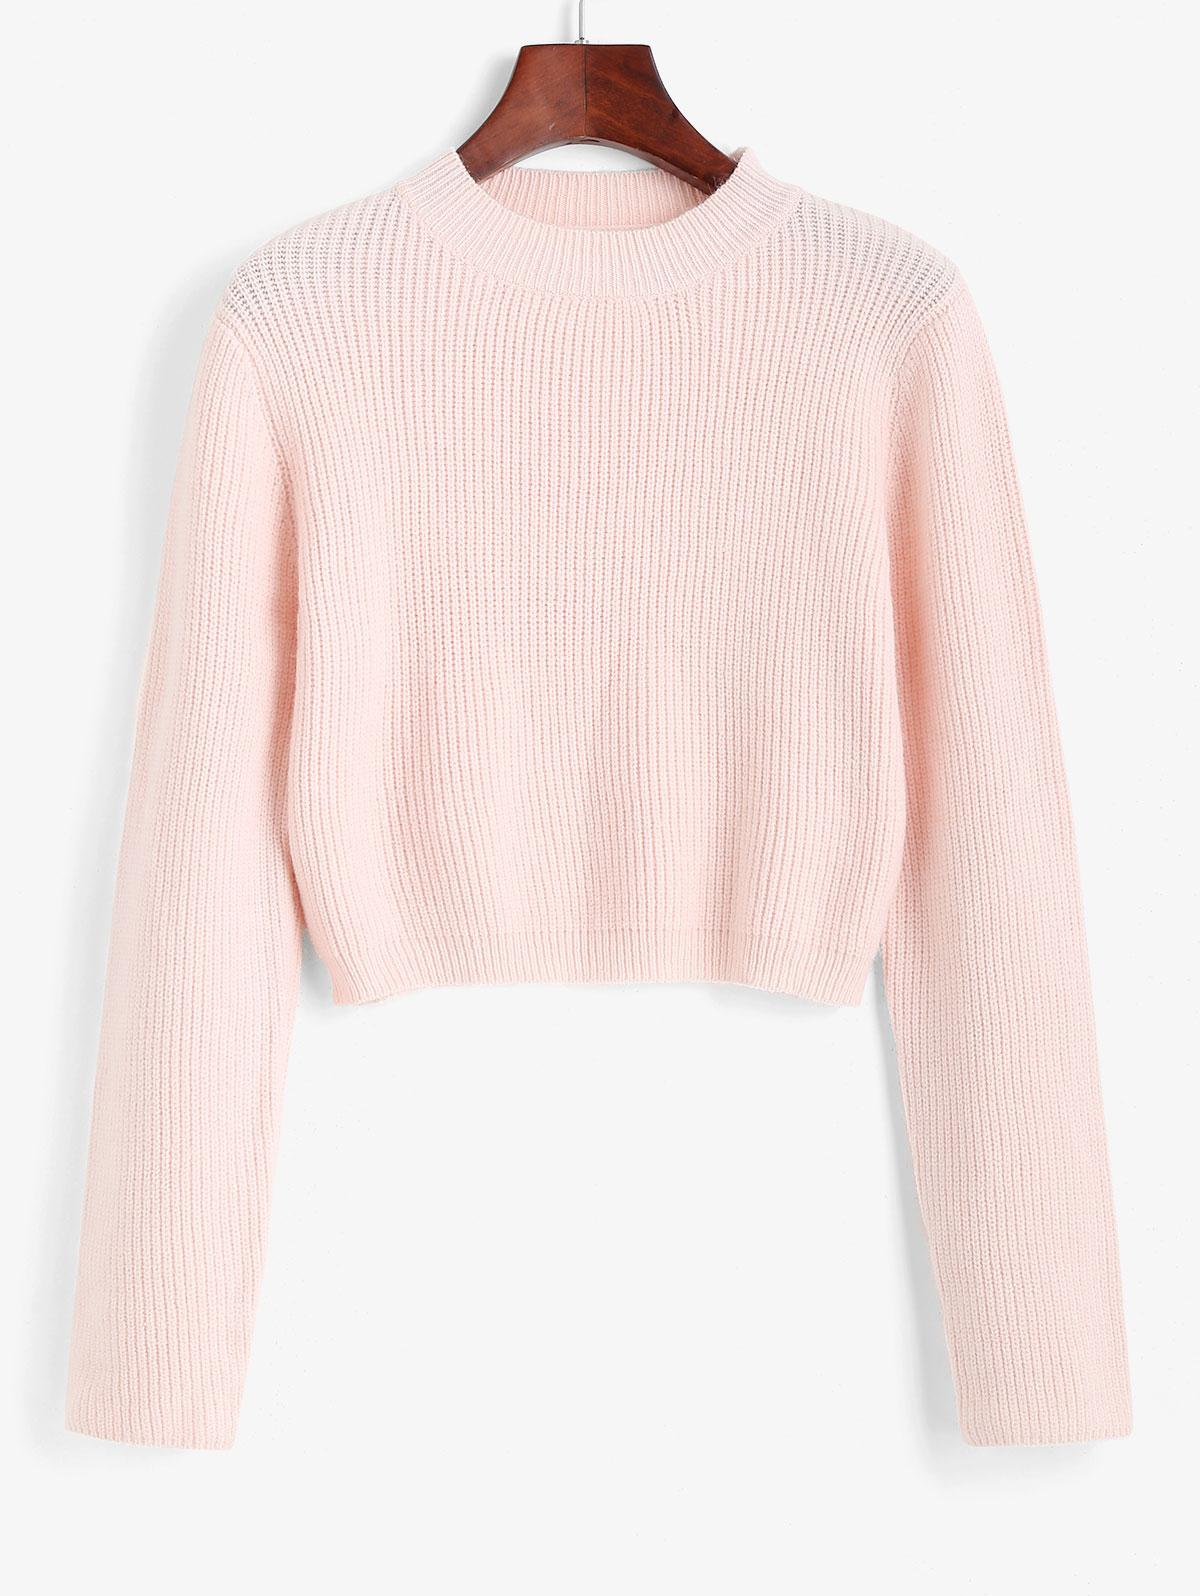 Crew Neck Solid Color Short Sweater